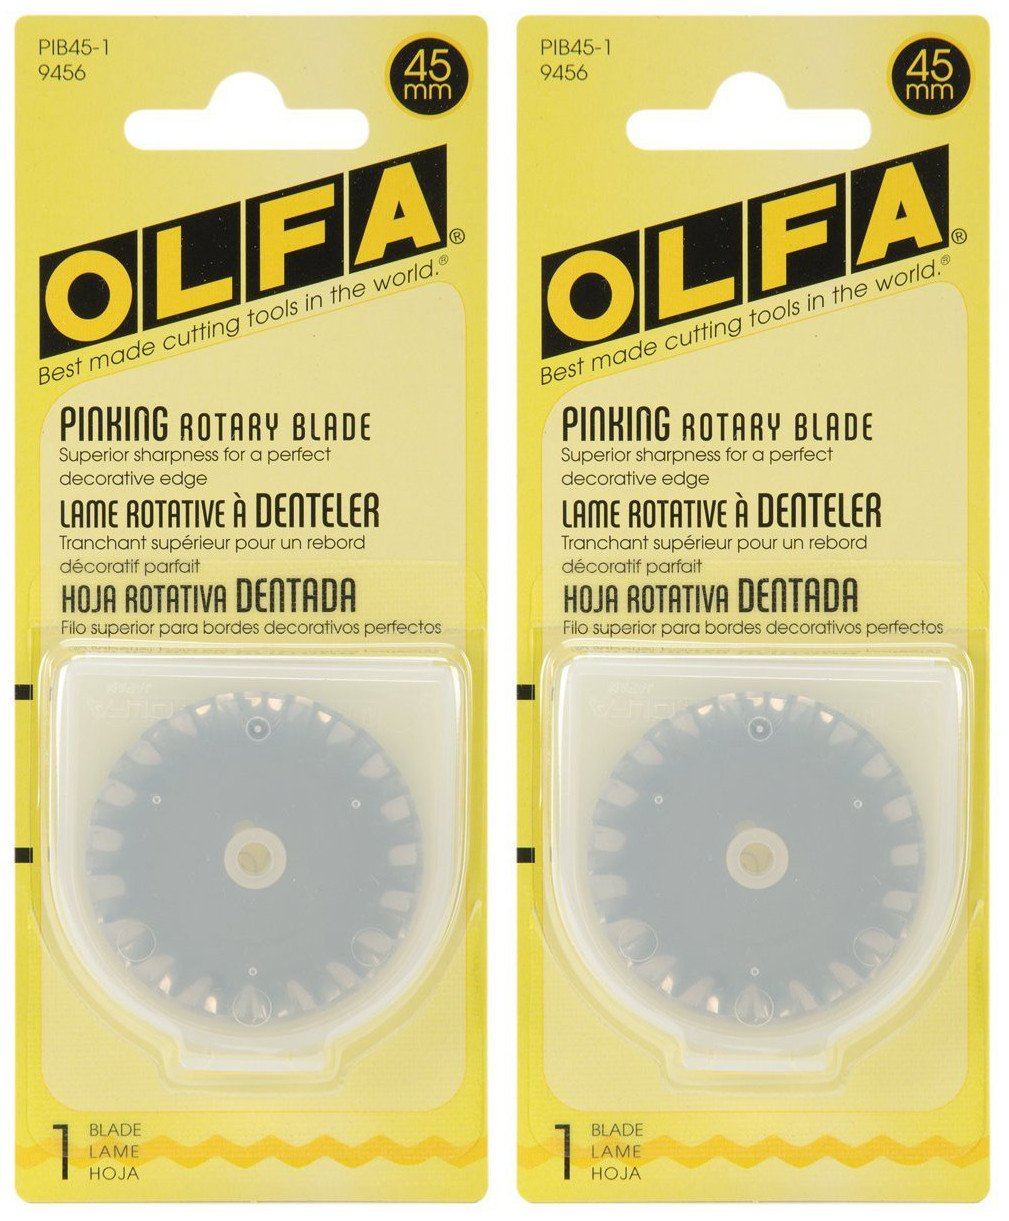 1-Pack OLFA 9456 PIB45-1 45mm Stainless Steel Pinking Blade